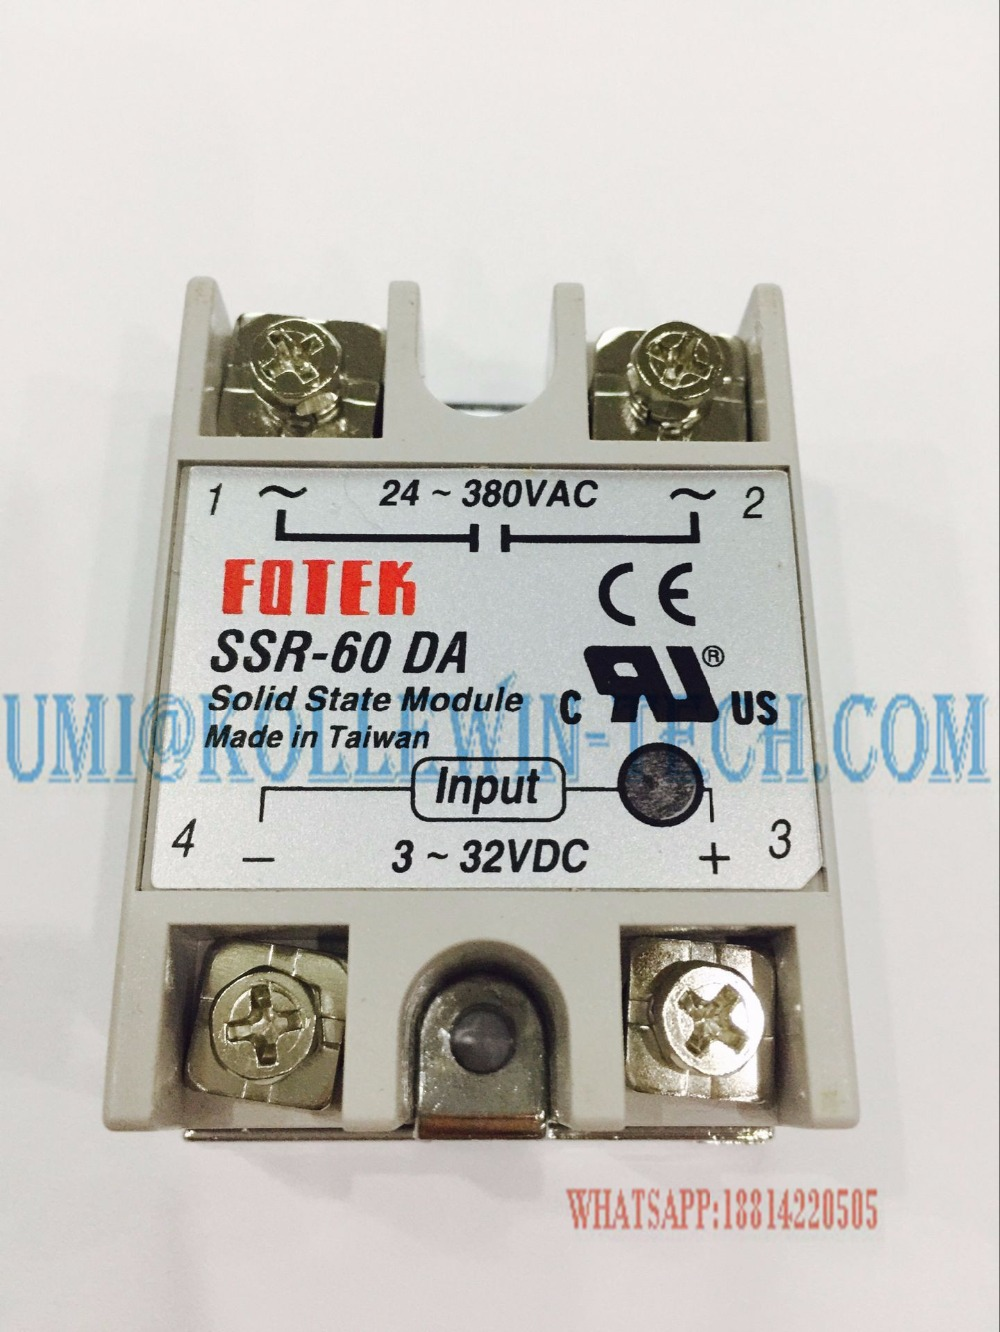 SSR-60 DA, Solid State Relay SSR 60DA 60A 3-32VDC/24-380VAC SSR-60DA 1pc ssr 50 da ssr 50da manufacturer 50a ssr relay input 3 32vdc output 24 380vac good quality with plastic cover wholesale hot